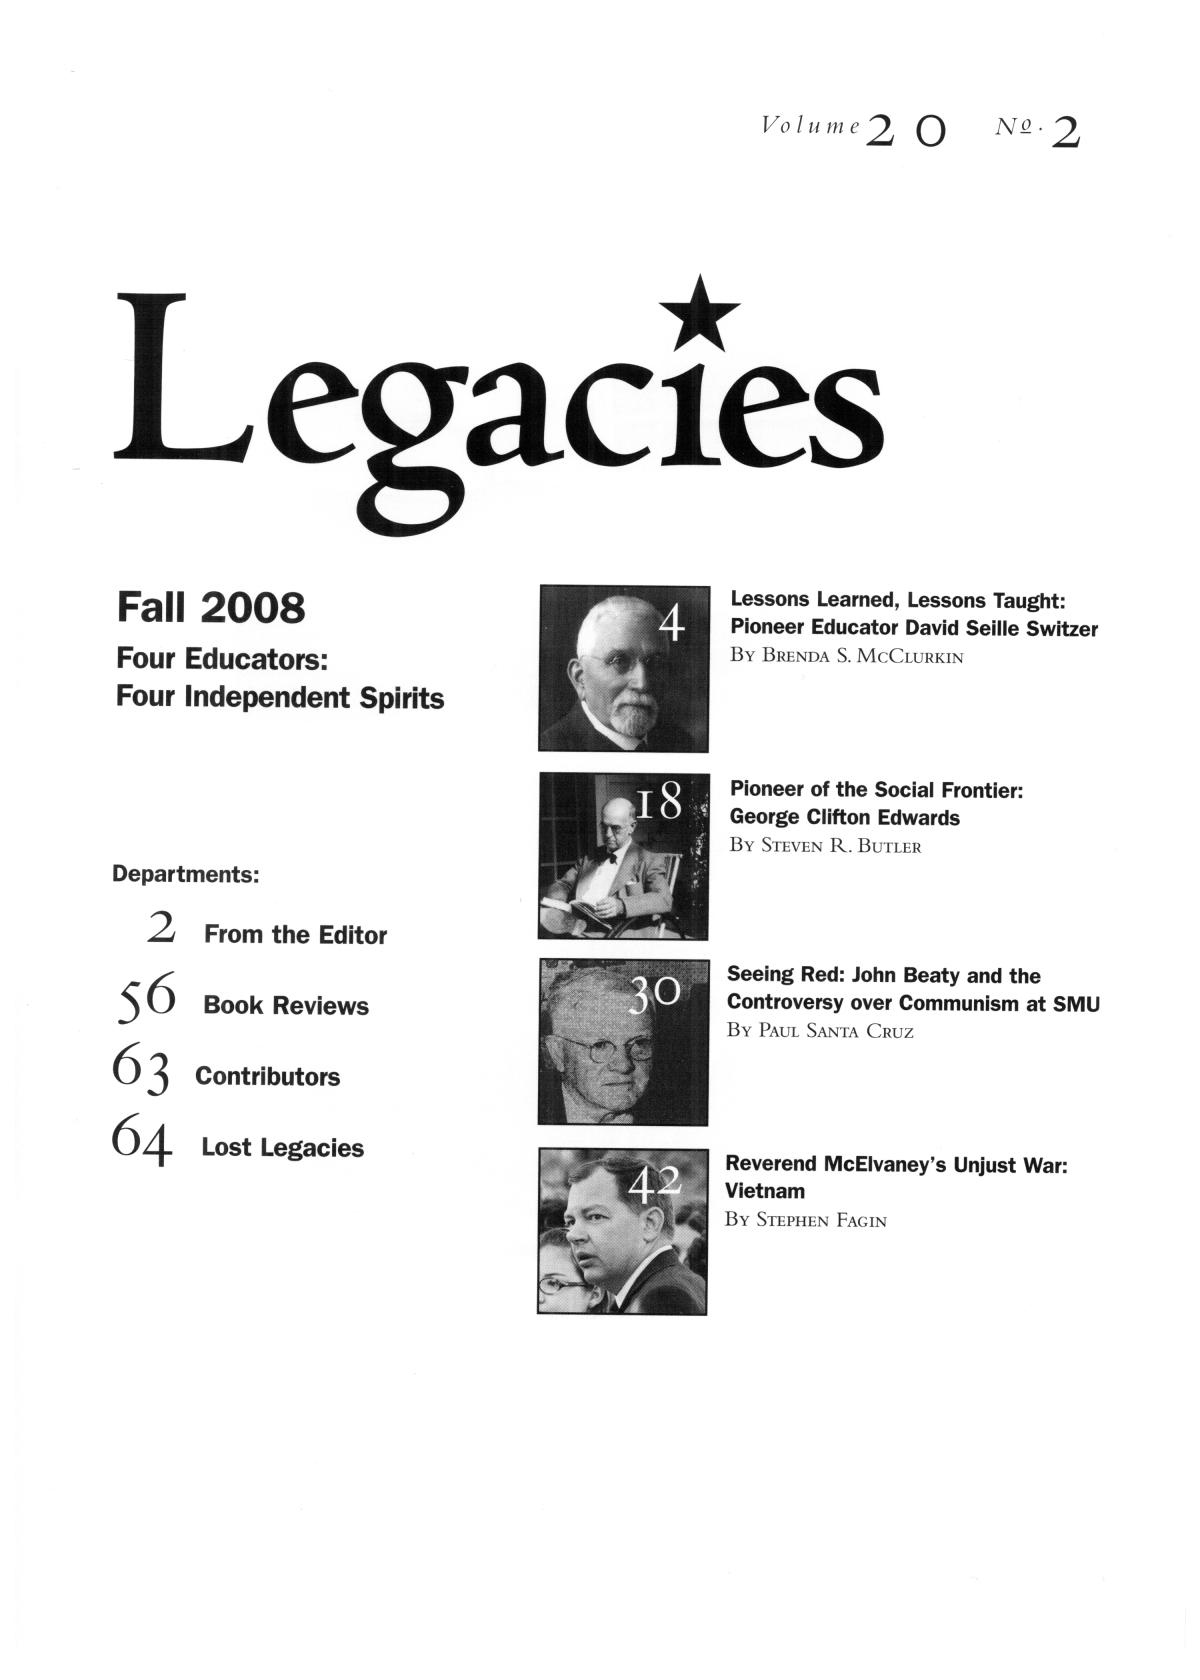 Legacies: A History Journal for Dallas and North Central Texas, Volume 20, Number 2, Fall, 2008                                                                                                      [Sequence #]: 3 of 68